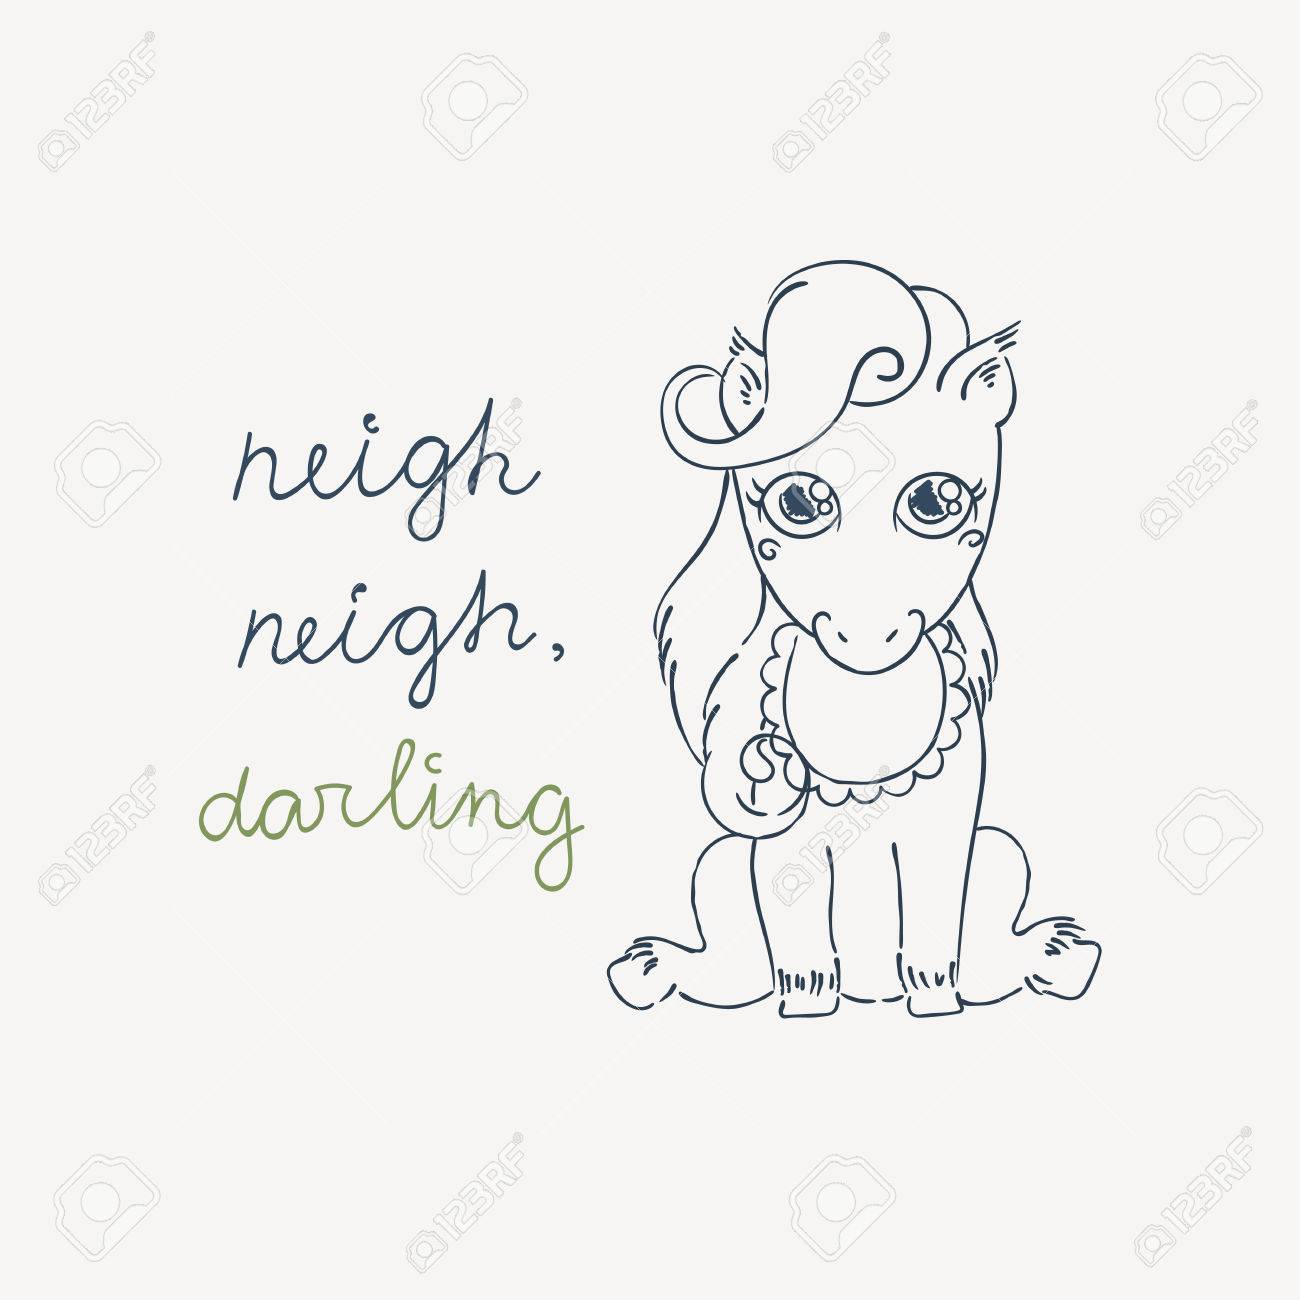 Little Cute Pony In A Bib Baby Horse In A Doodle Style Coloring Royalty Free Cliparts Vectors And Stock Illustration Image 68323950